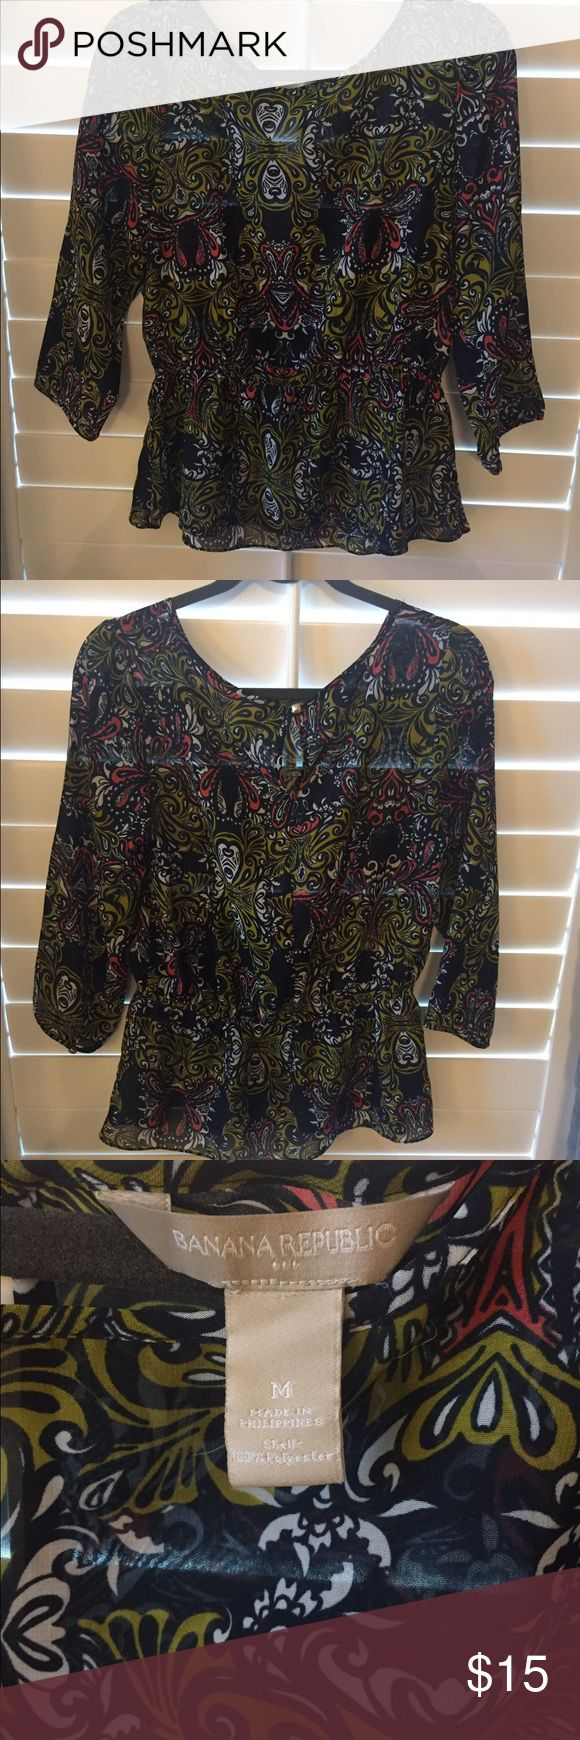 Banana Republic Medium top Banana Republic tops- size medium. Navy, white, with hint of orange & yellow sheer top. Super cute with dress pants or jeans! Banana Republic Tops Blouses